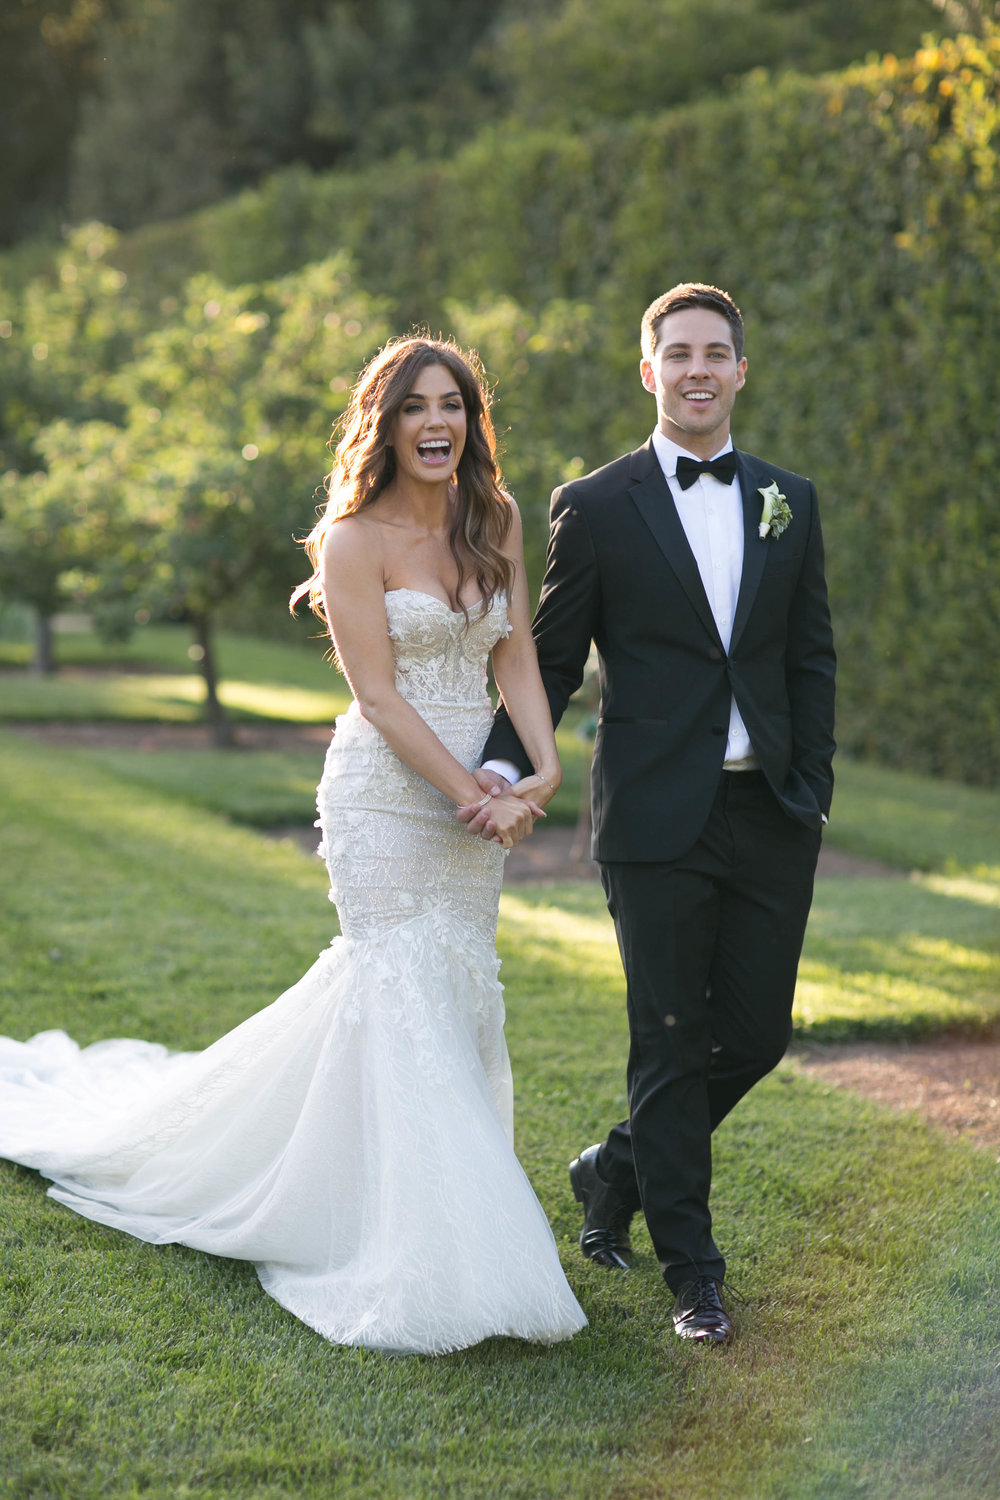 JillianMurray_Deangeyer_Wedding_Jana_Williams_Photography-7122.jpg